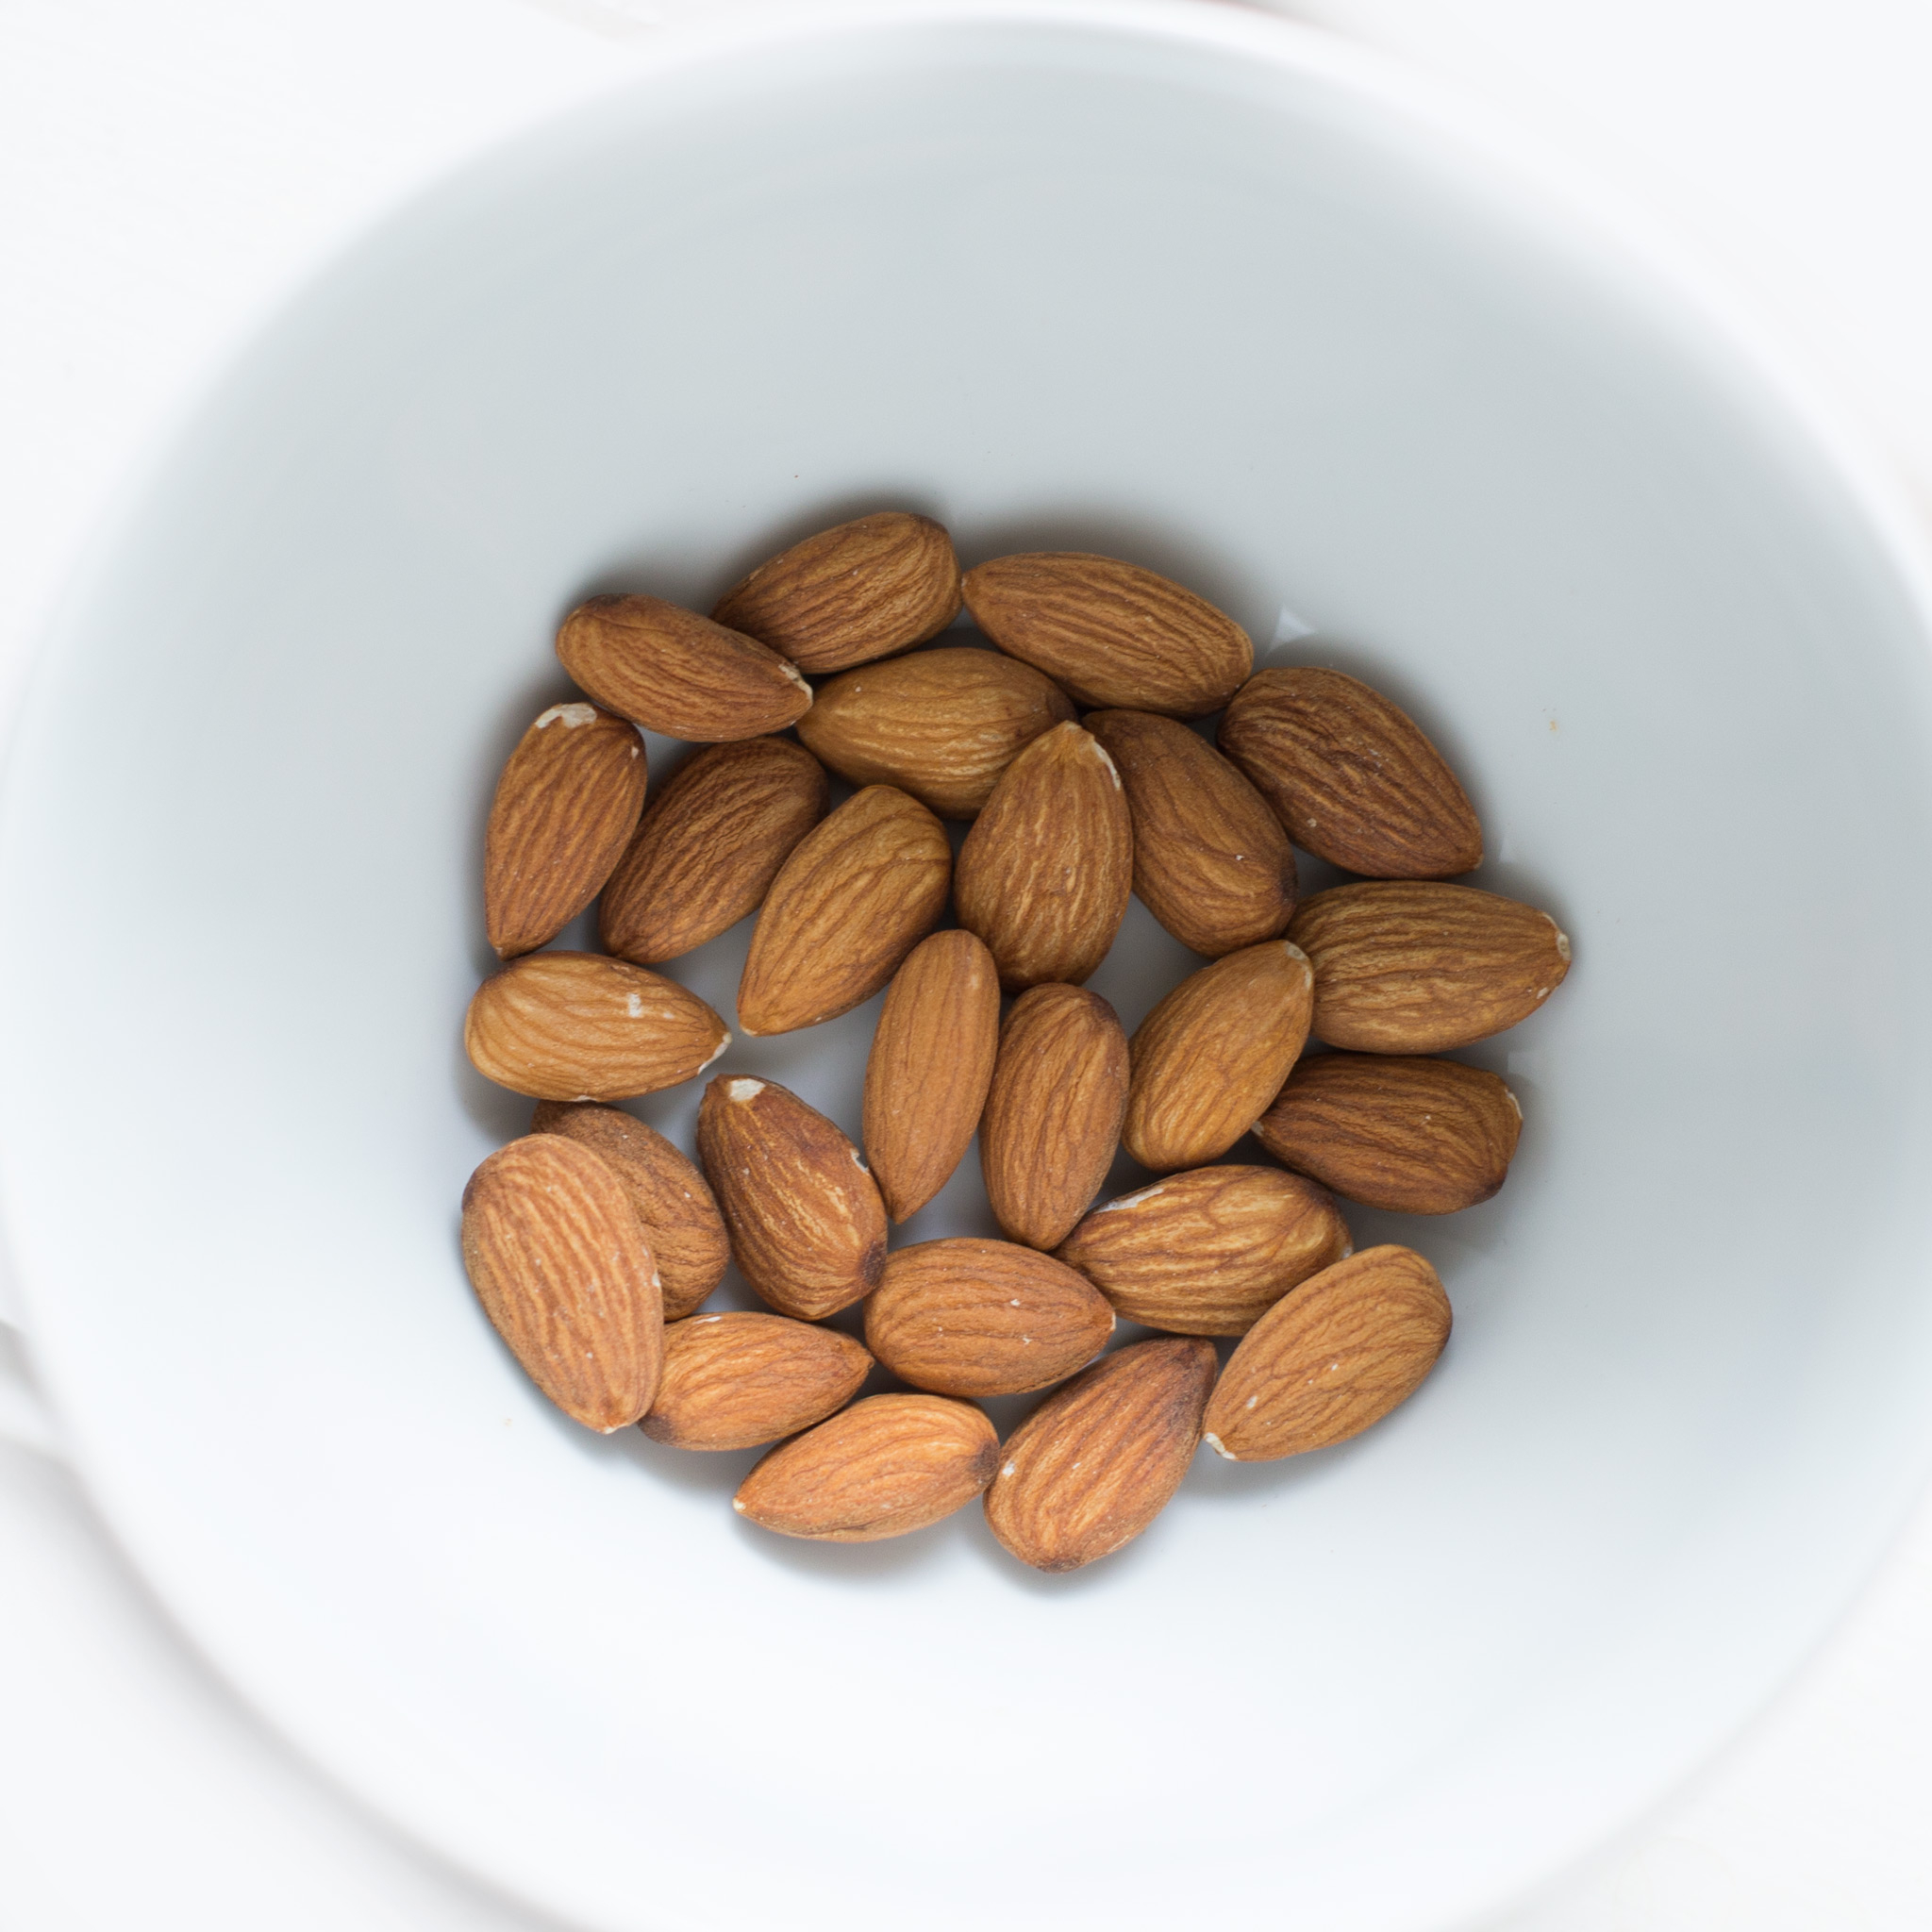 Canva - Brown Almond Nuts on White Ceramic Bowl